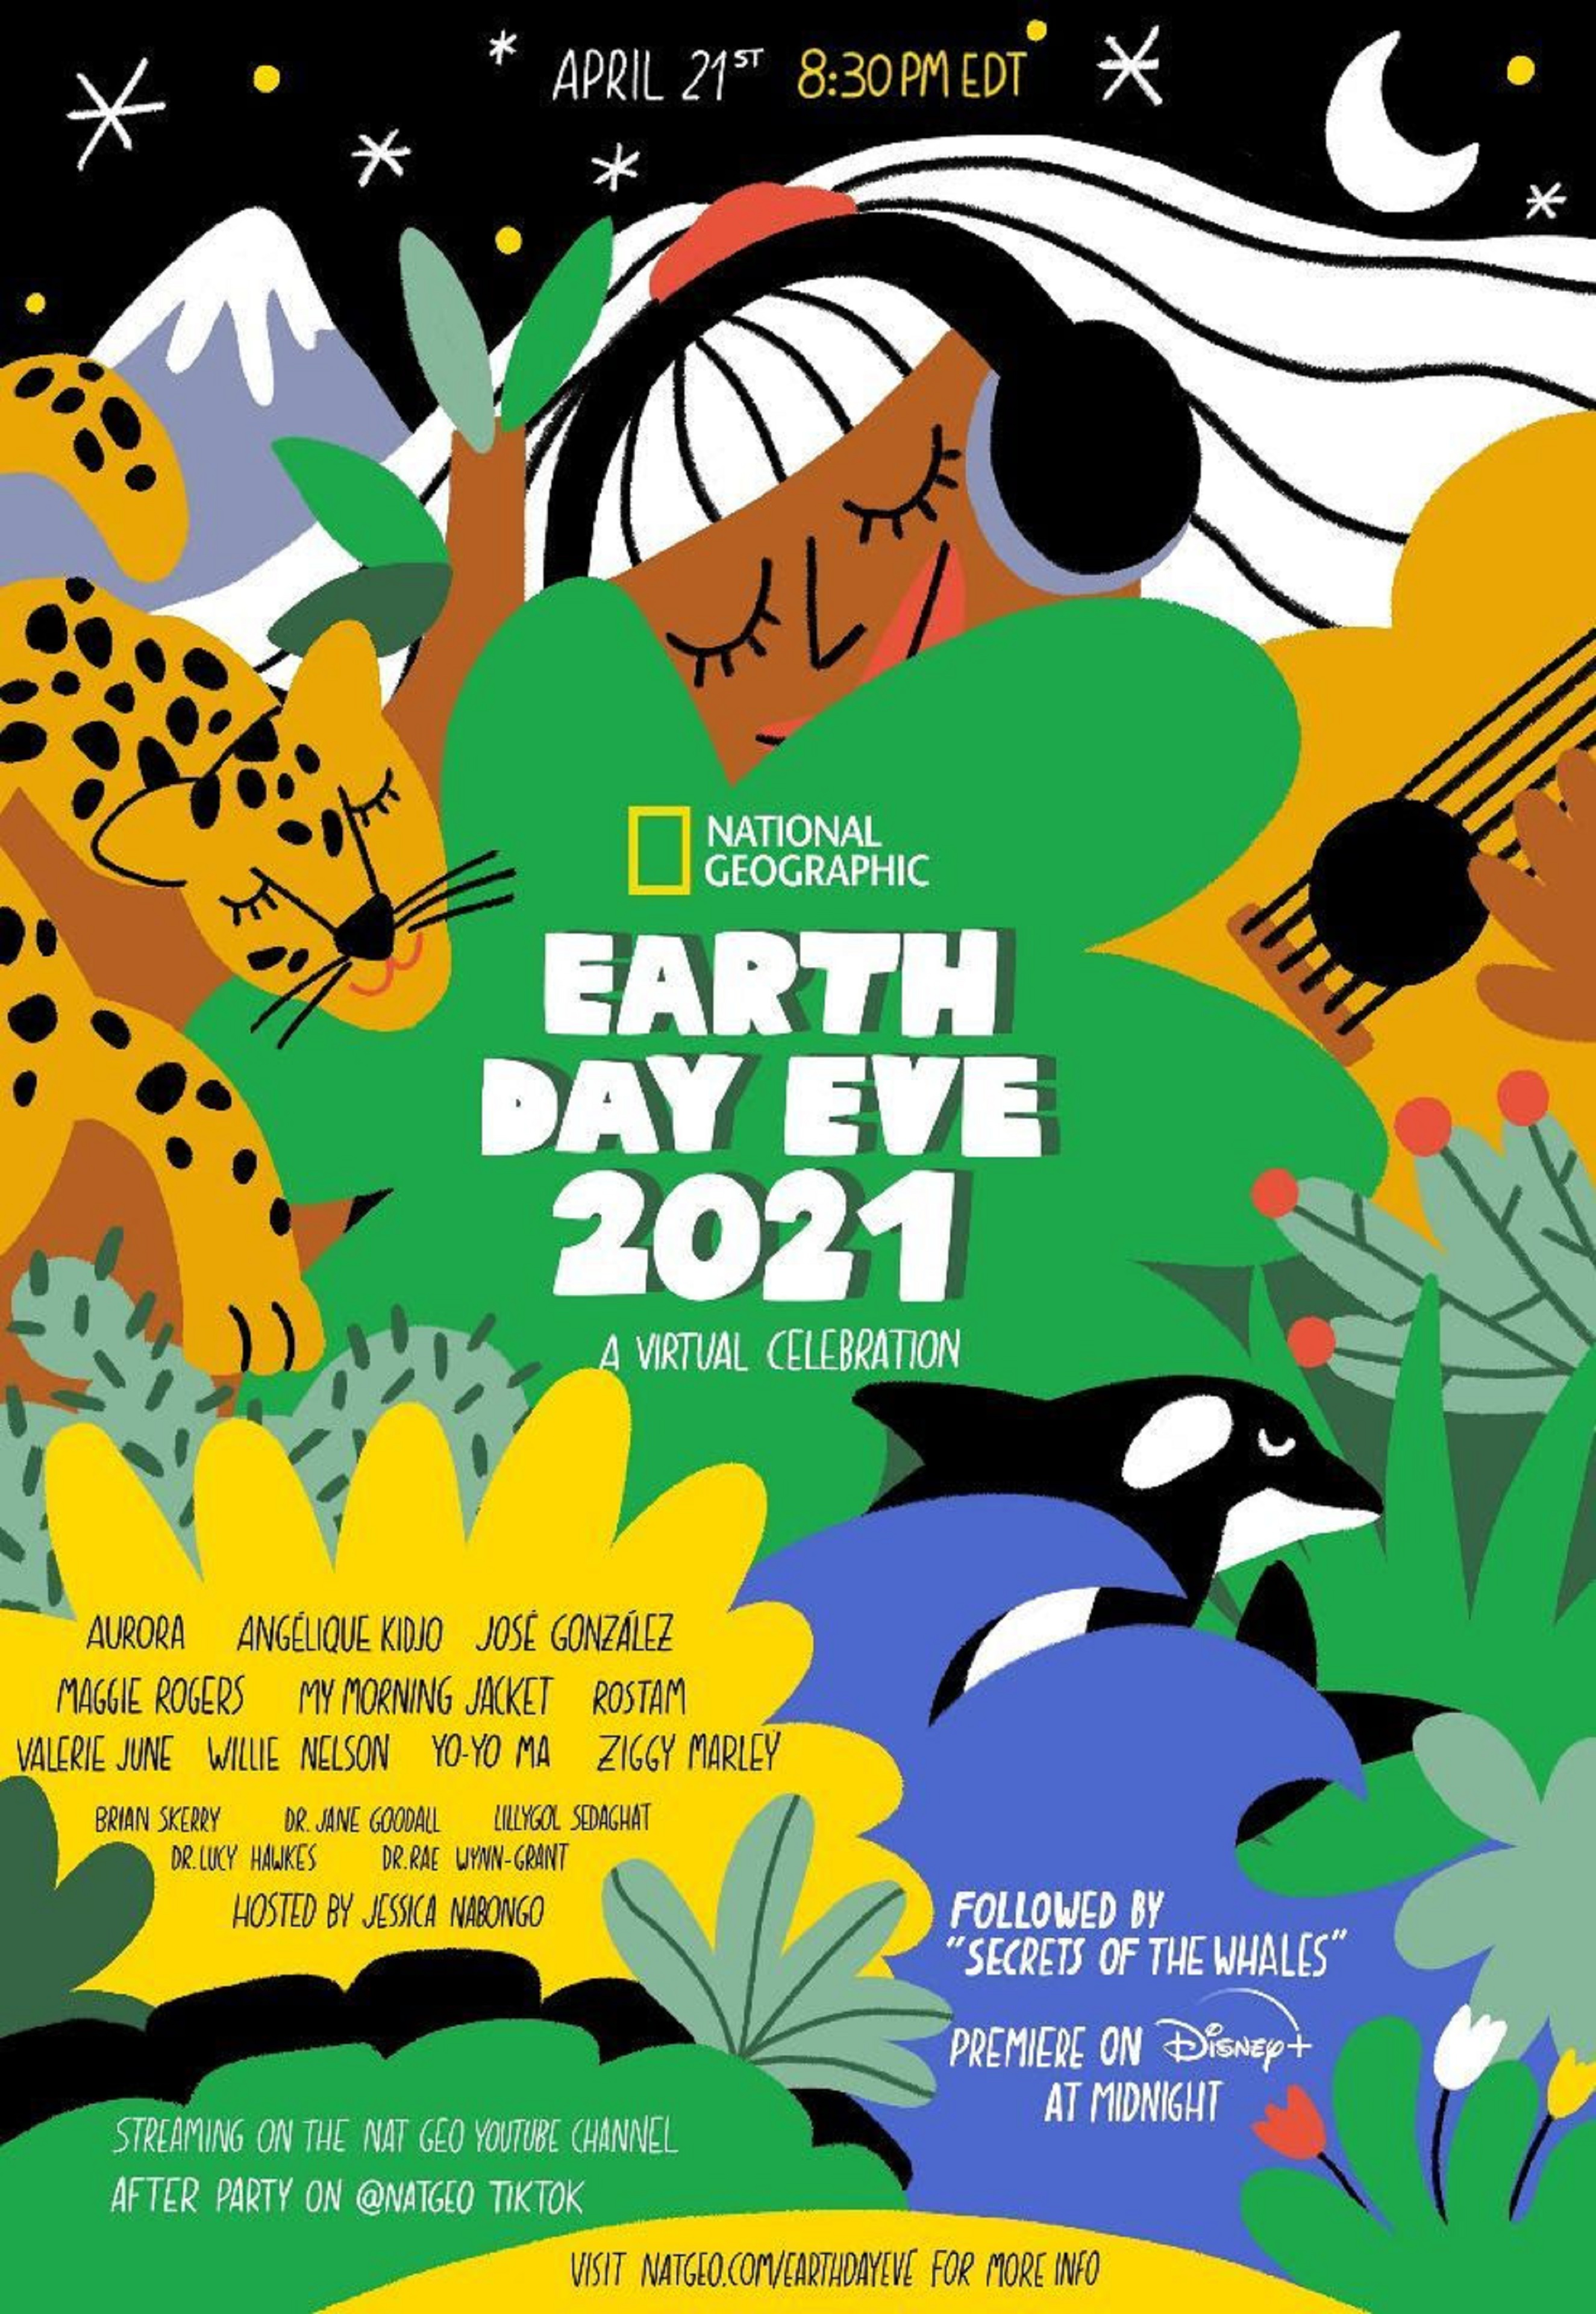 National Geographic Announces Earth Day Eve 2021 Virtual Celebration